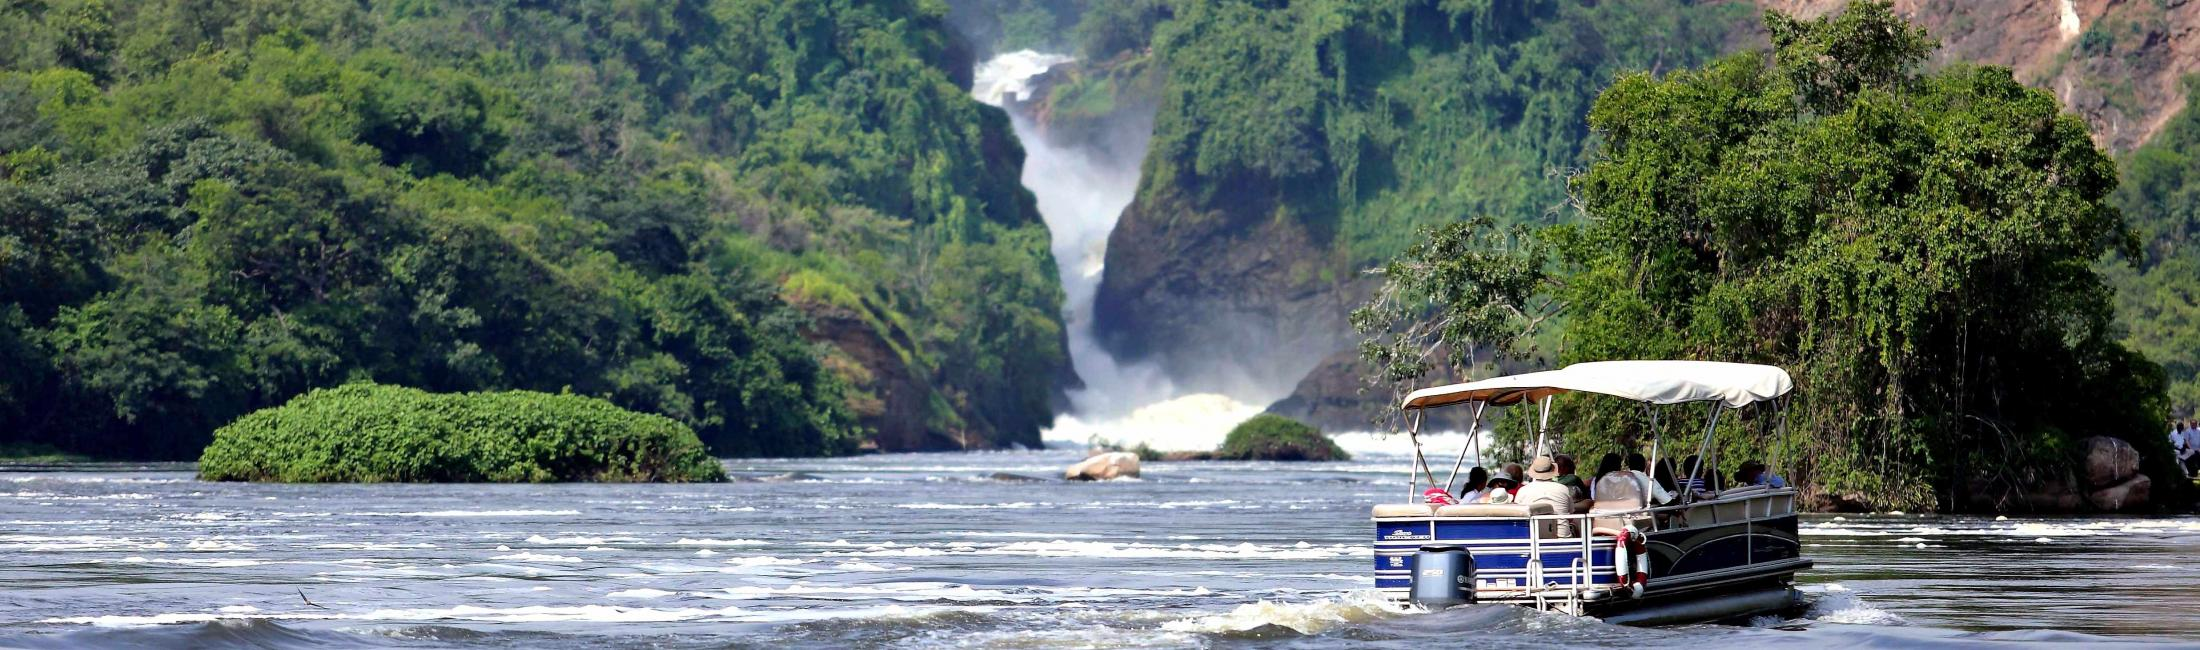 Boat trip on the Nile River upstream to Murchison Falls (Uganda)